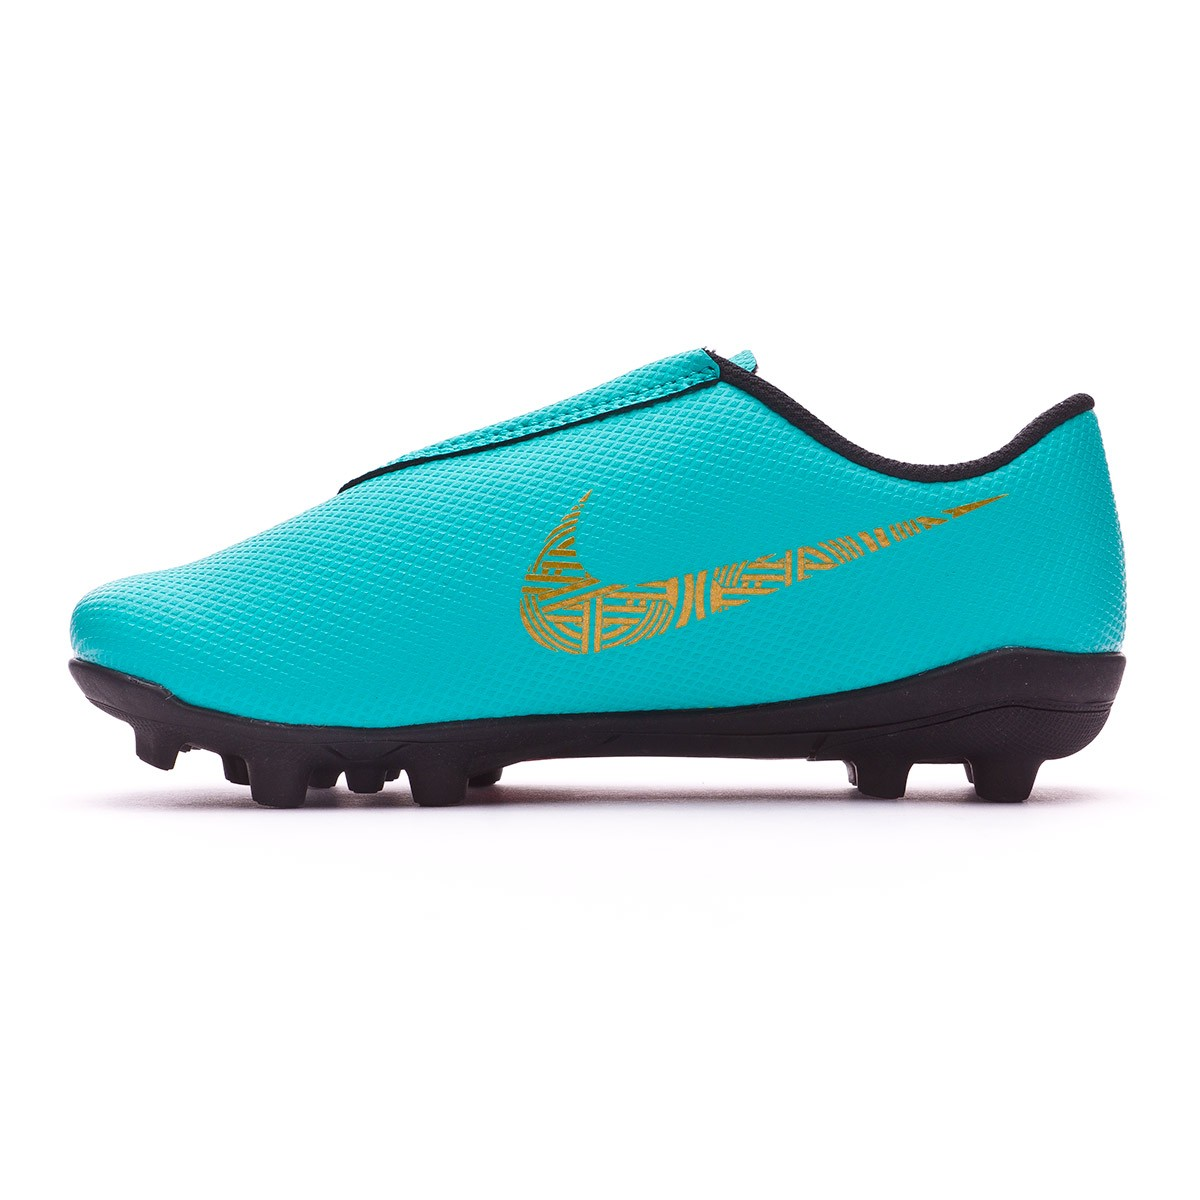 8be139c15 Football Boots Nike Kids Mercurial Vapor XII Club PS Velcro CR7 MG Clear  jade-Metallic vivid gold-Black - Football store Fútbol Emotion